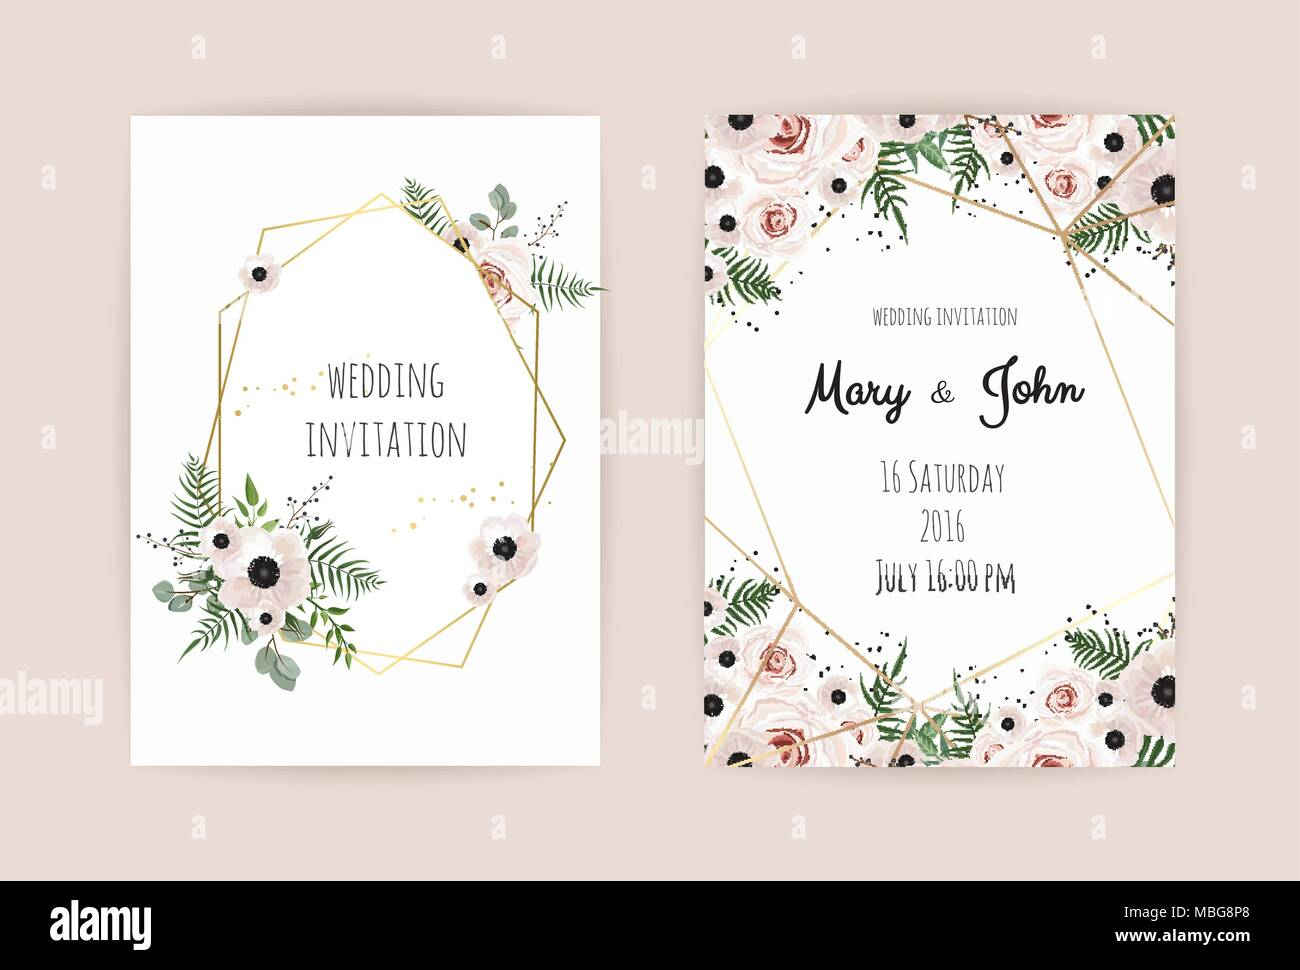 Wedding invite invitation save the date card design with elegant wedding invite invitation save the date card design with elegant pink rose and anemonebranches leaves cute golden geometrical pattern vector temp stopboris Images